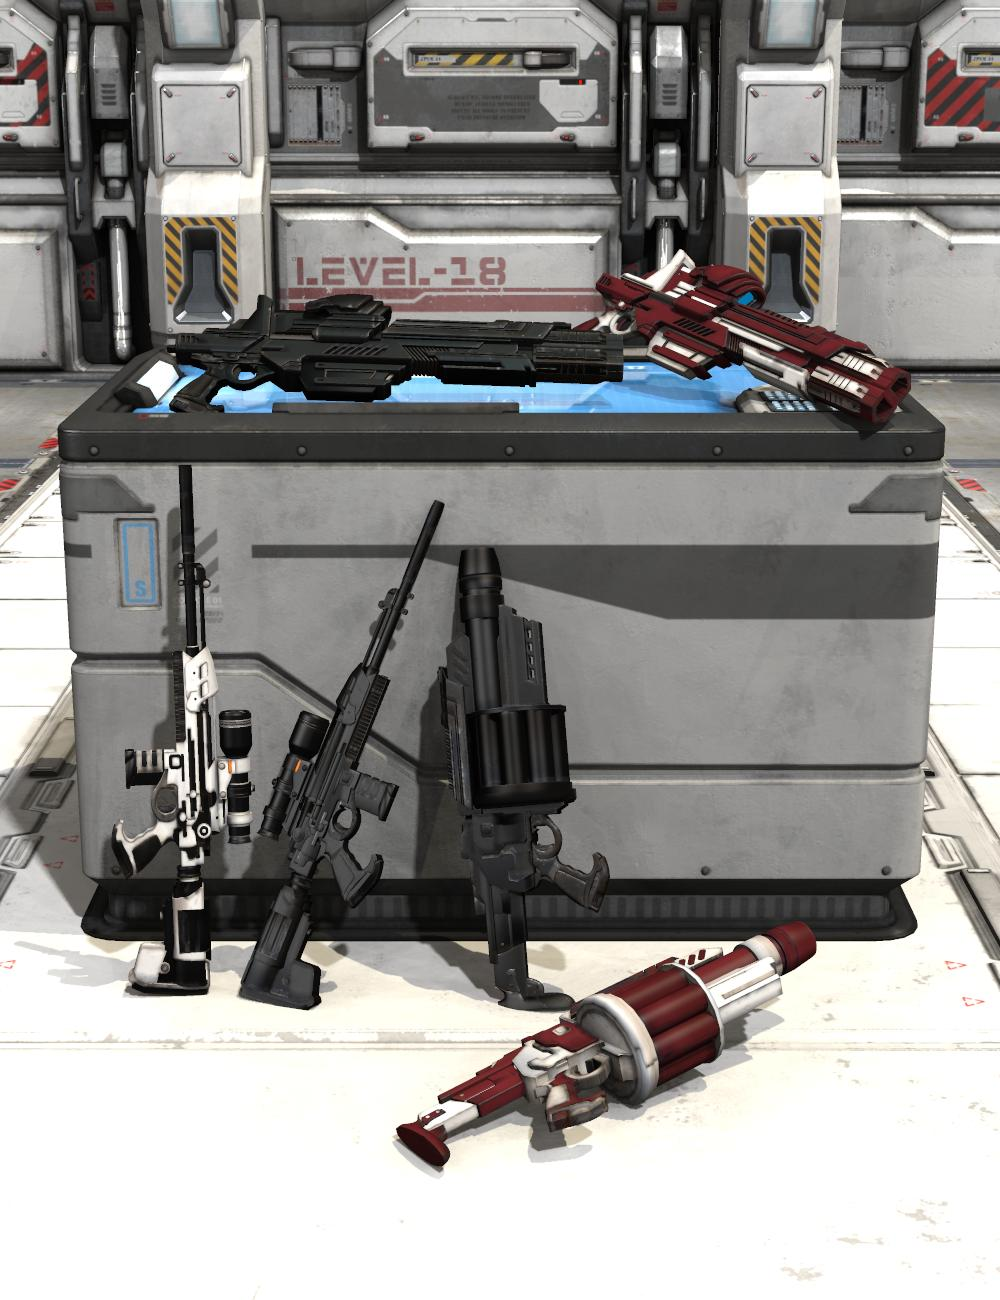 Mestophales Sci Fi Weapons 2 by: mighty_mestophales, 3D Models by Daz 3D